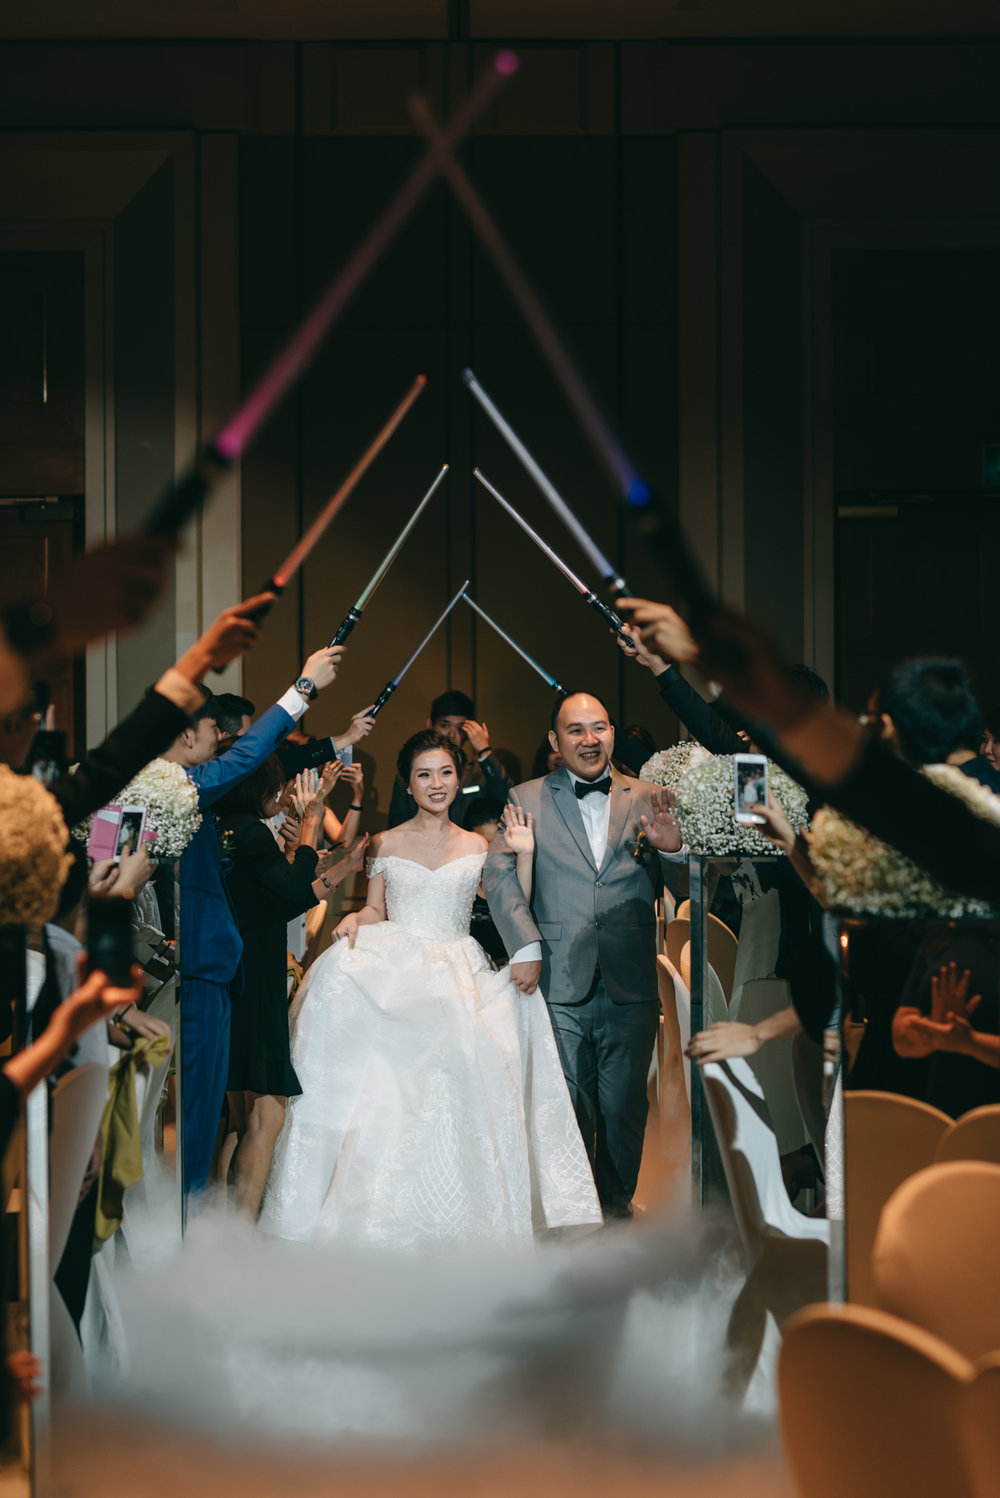 Eunice & Winshire Wedding Day Highlights (resized for sharing) - 182.jpg